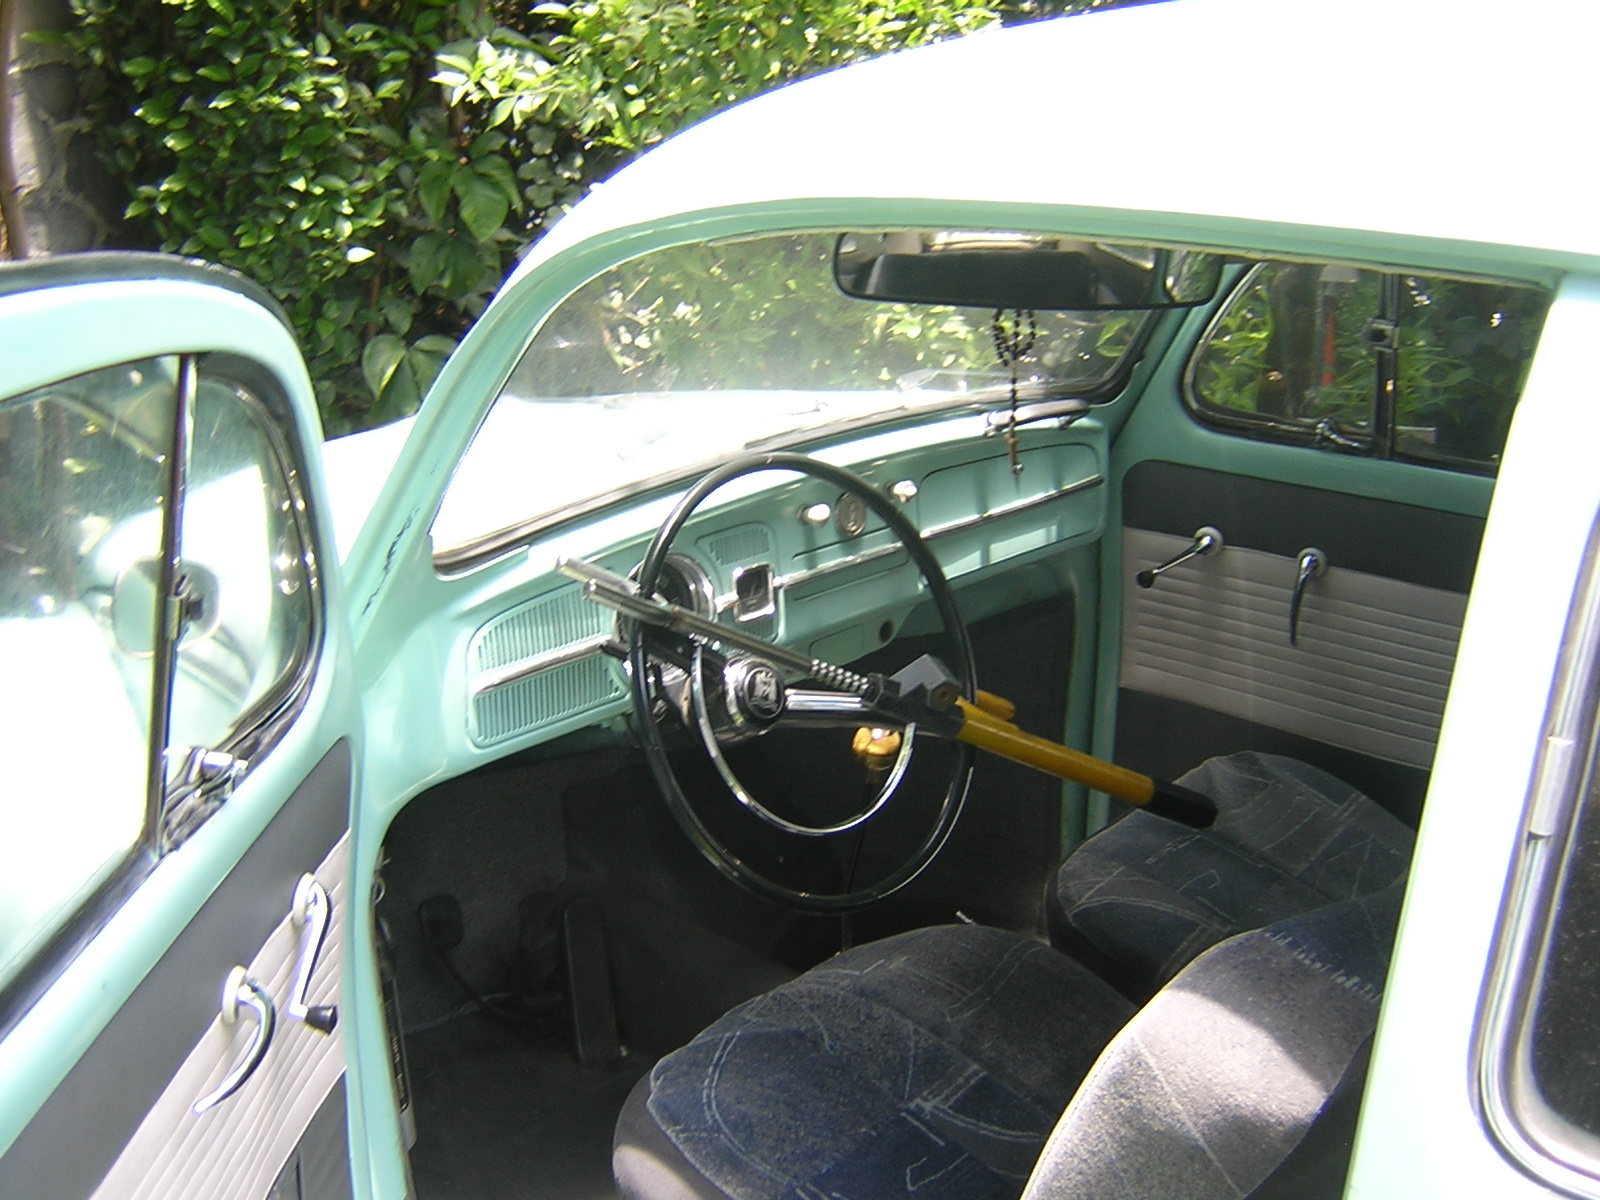 File:Slightly Modified Interior Of A 1969 VW Bug